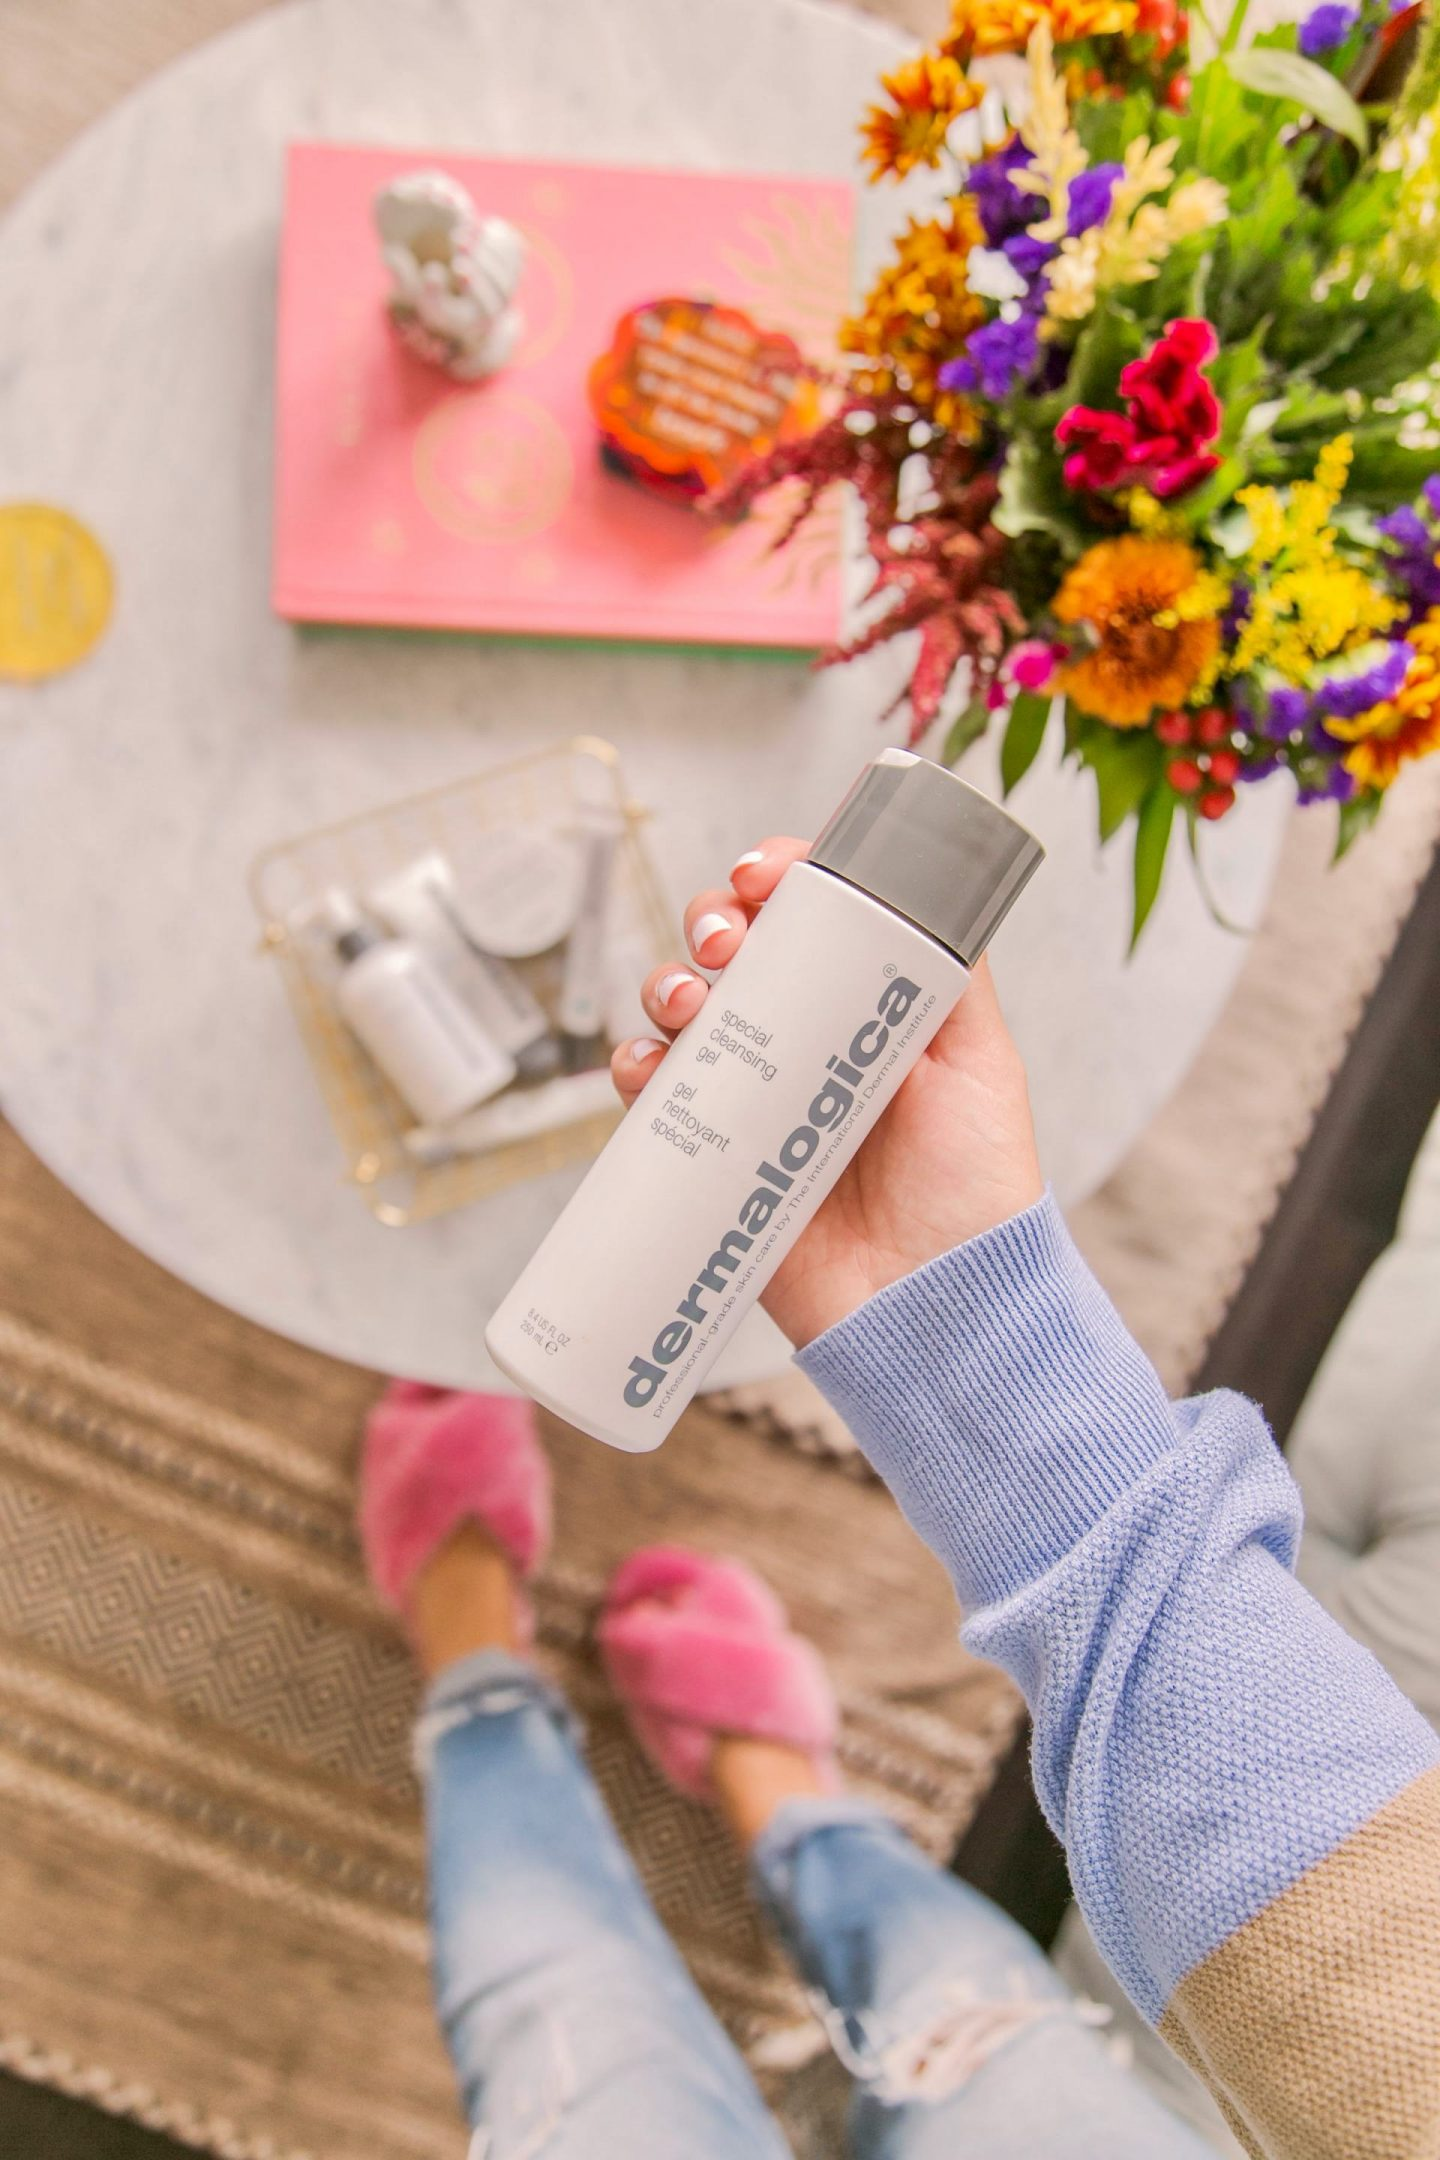 The best Dermalogica Special Cleansing gel for acne prone skin